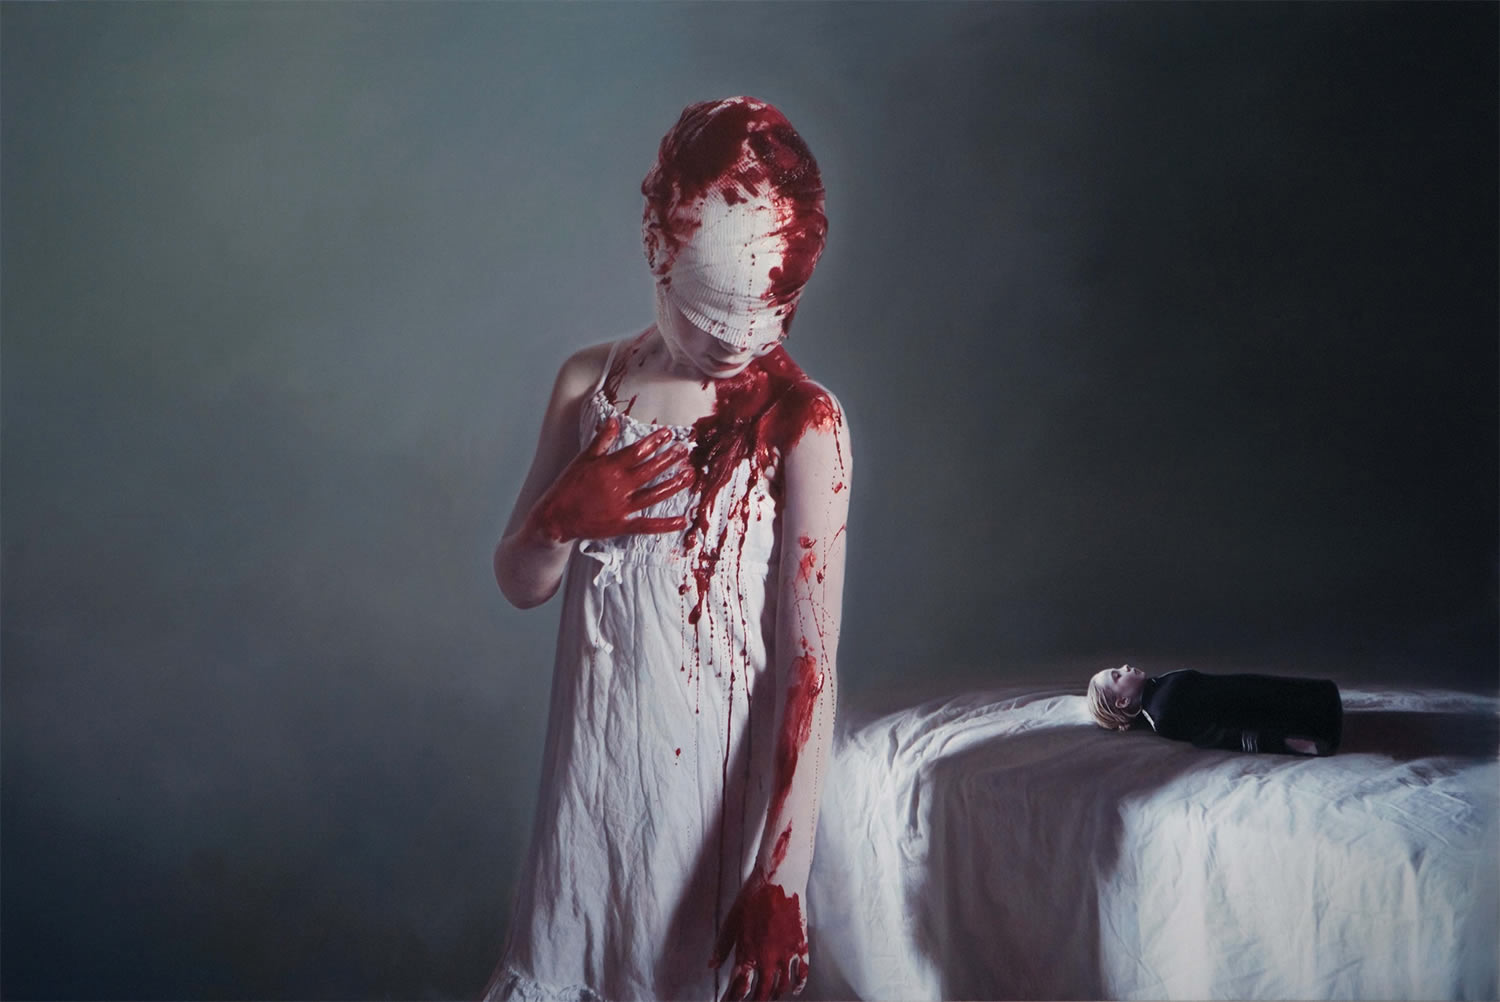 The Disasters of War 3, hyperrealist painting of girl with bloody bandages, by gottfried helwein